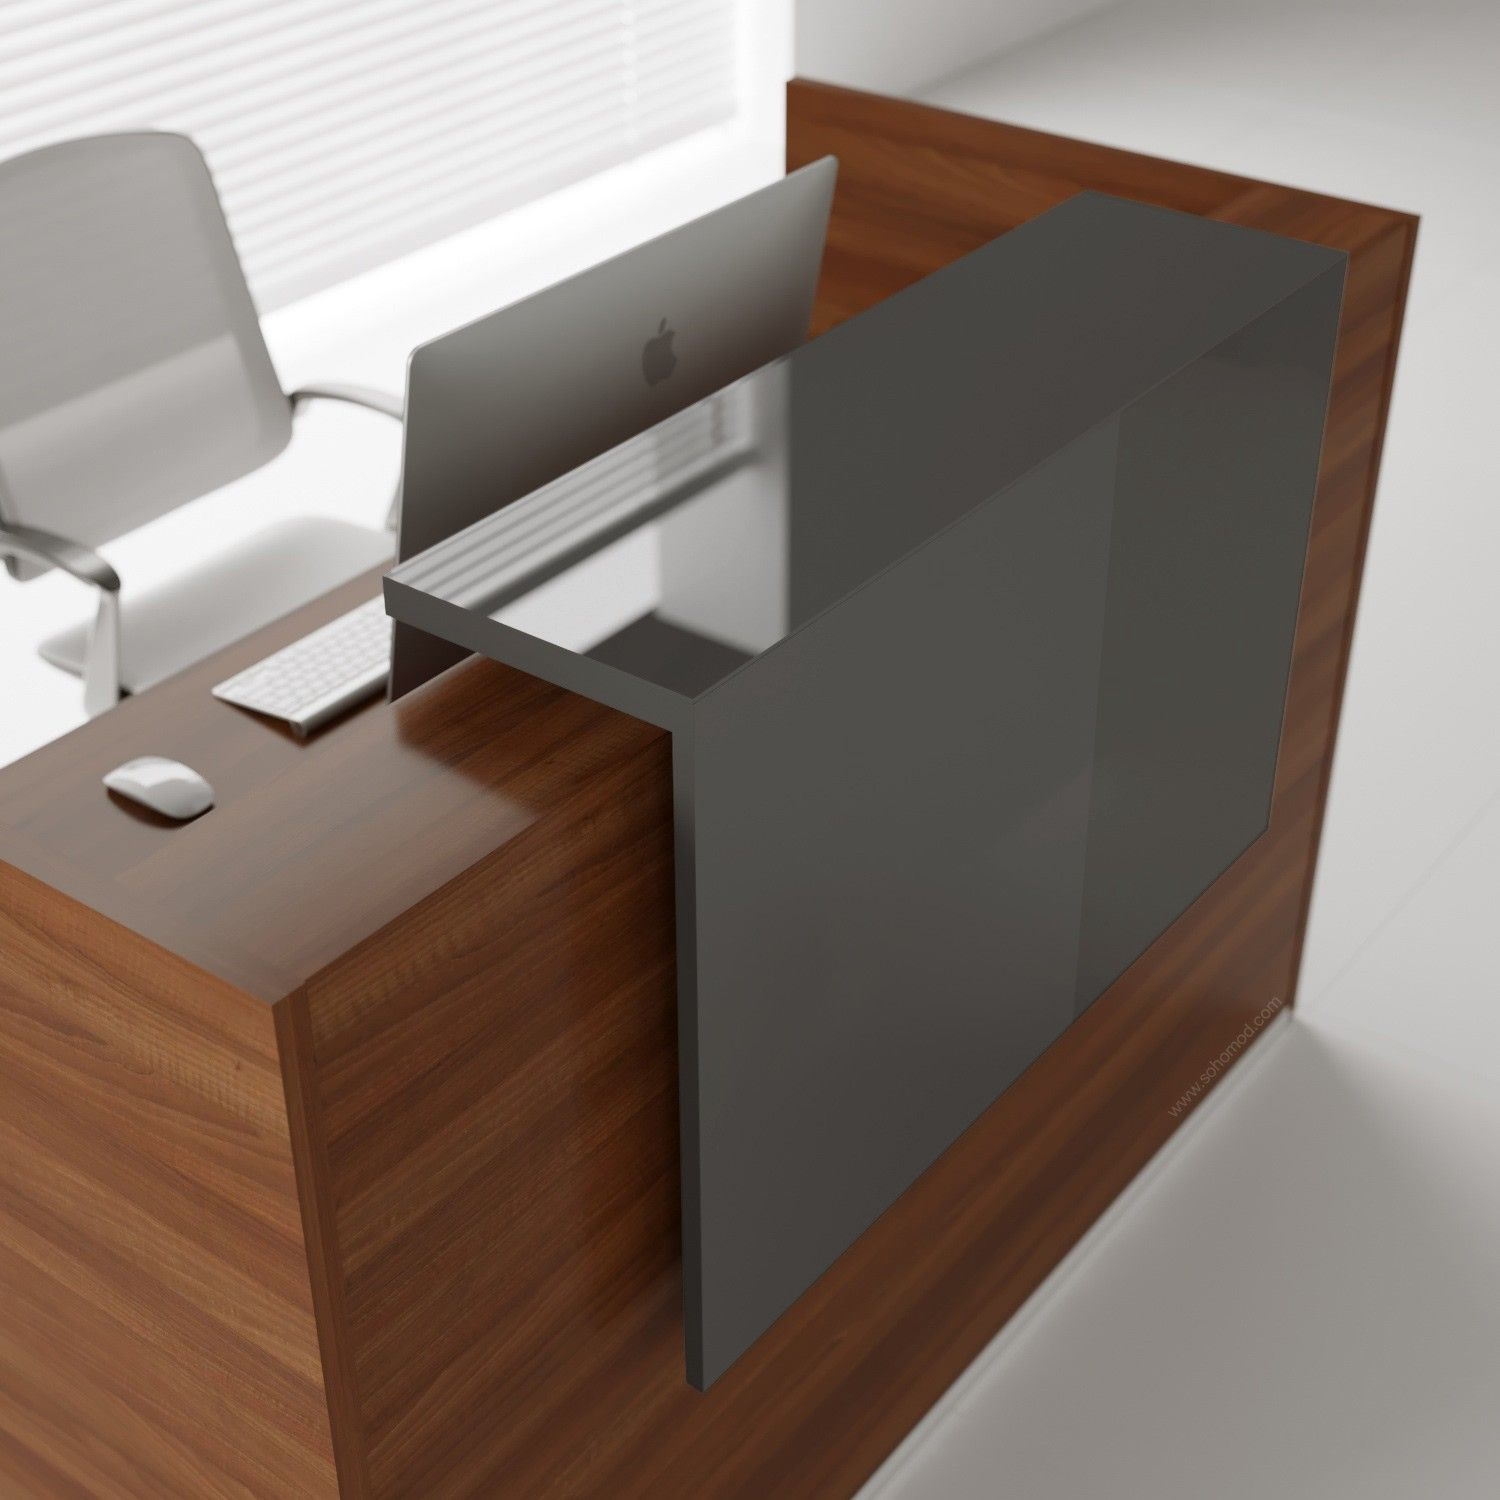 Add Class And Elegance To Your Work Space With This Simple Yet